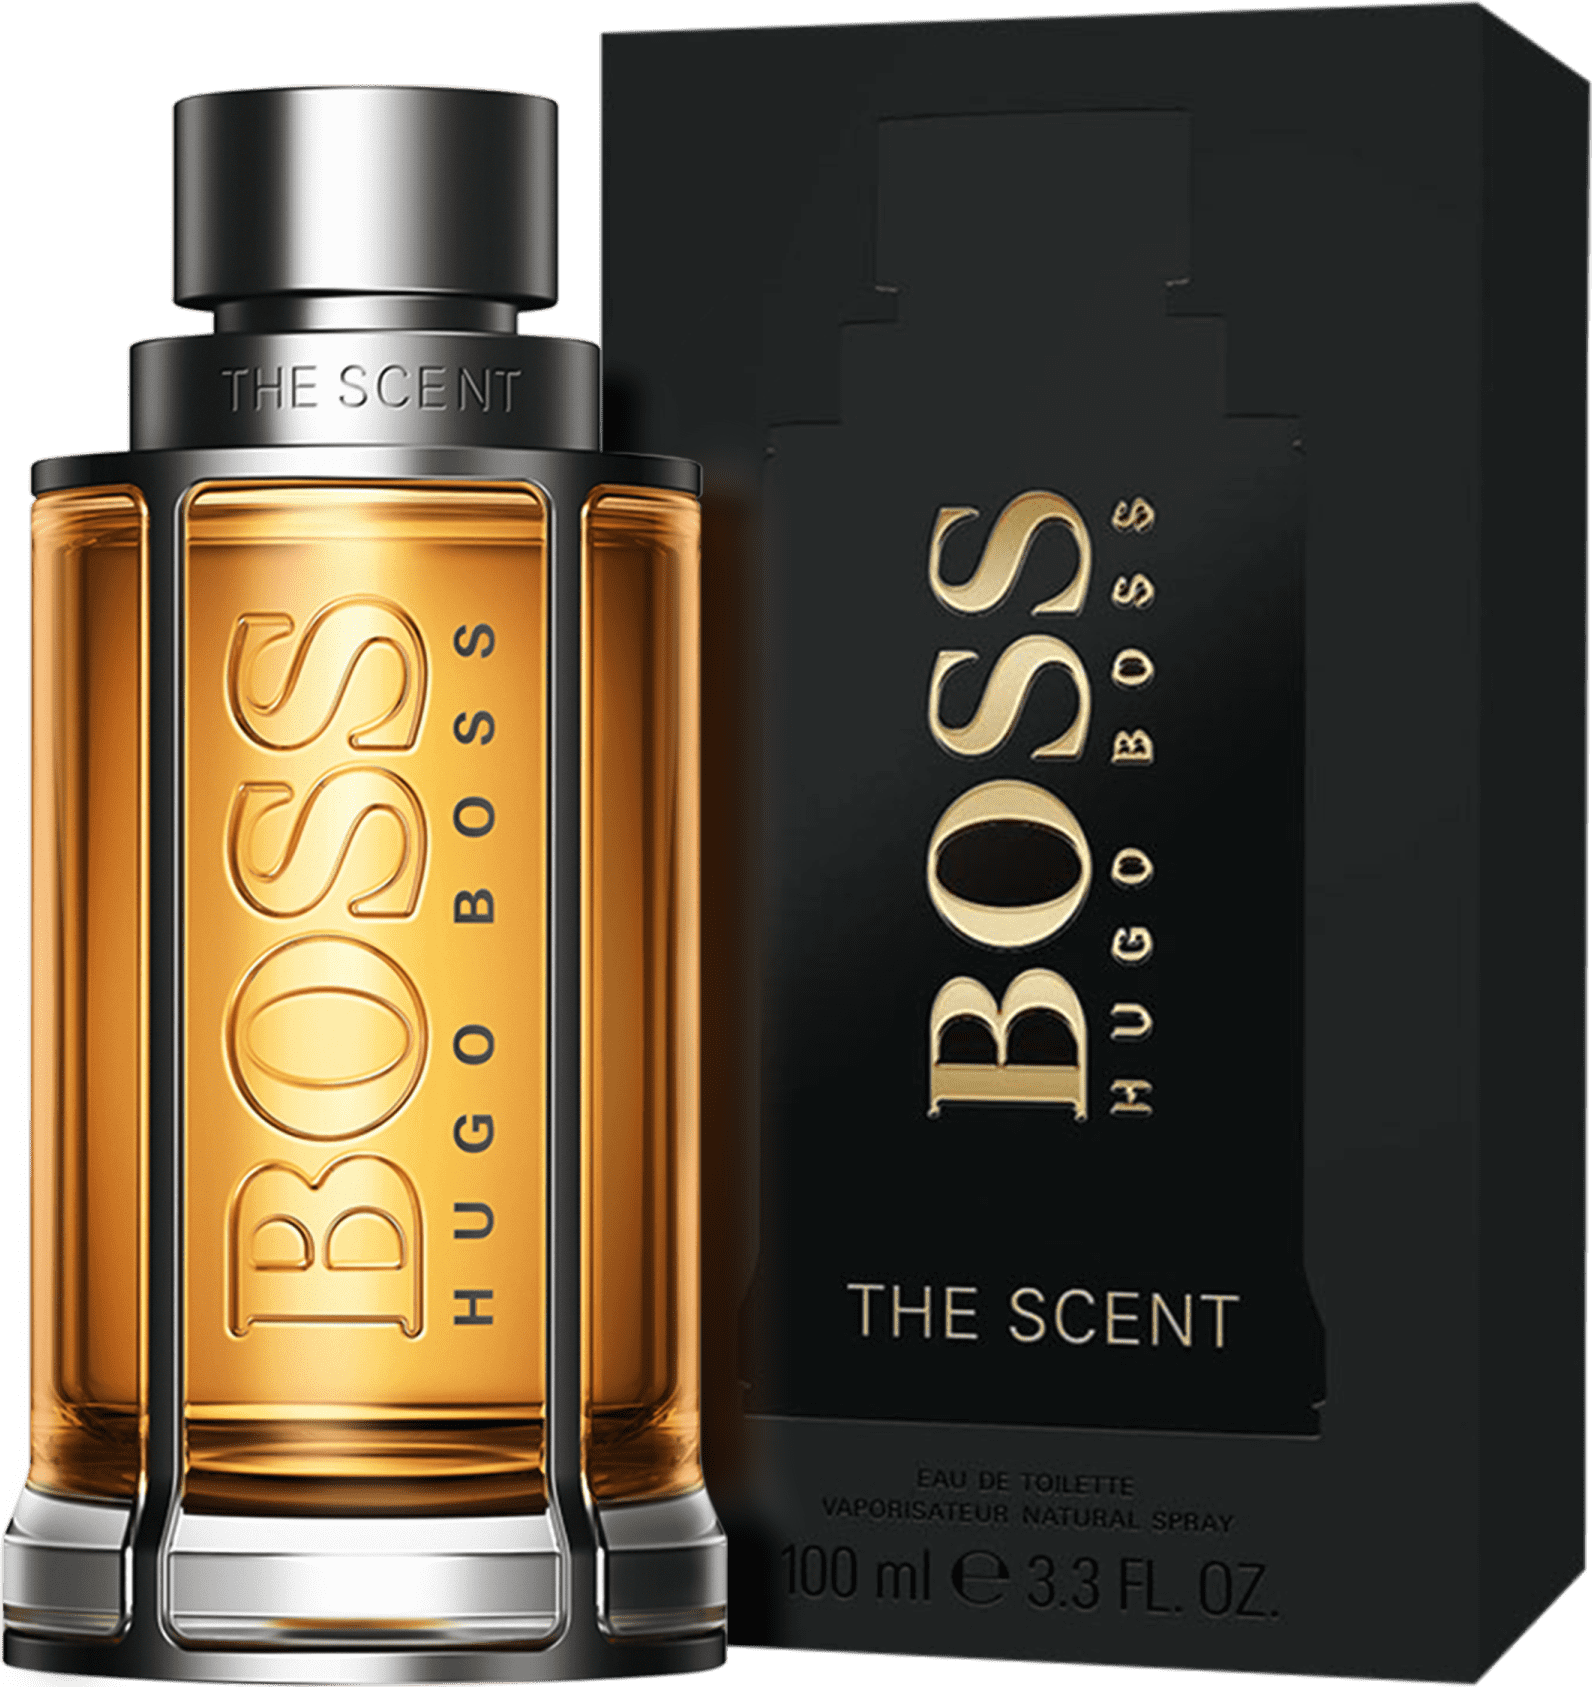 a18c8032d Boss The Scent Hugo Boss Eau de Toilette - Perfume Masculino 100ml